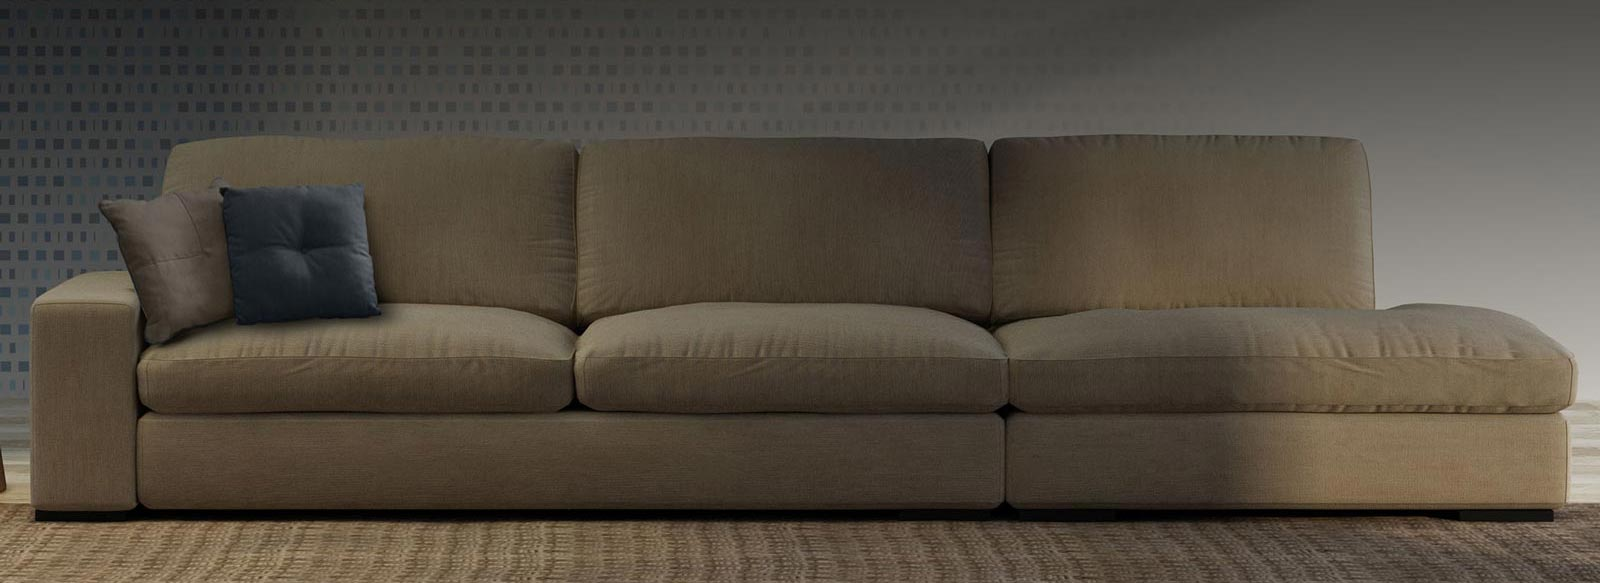 Sofas by Moradillo